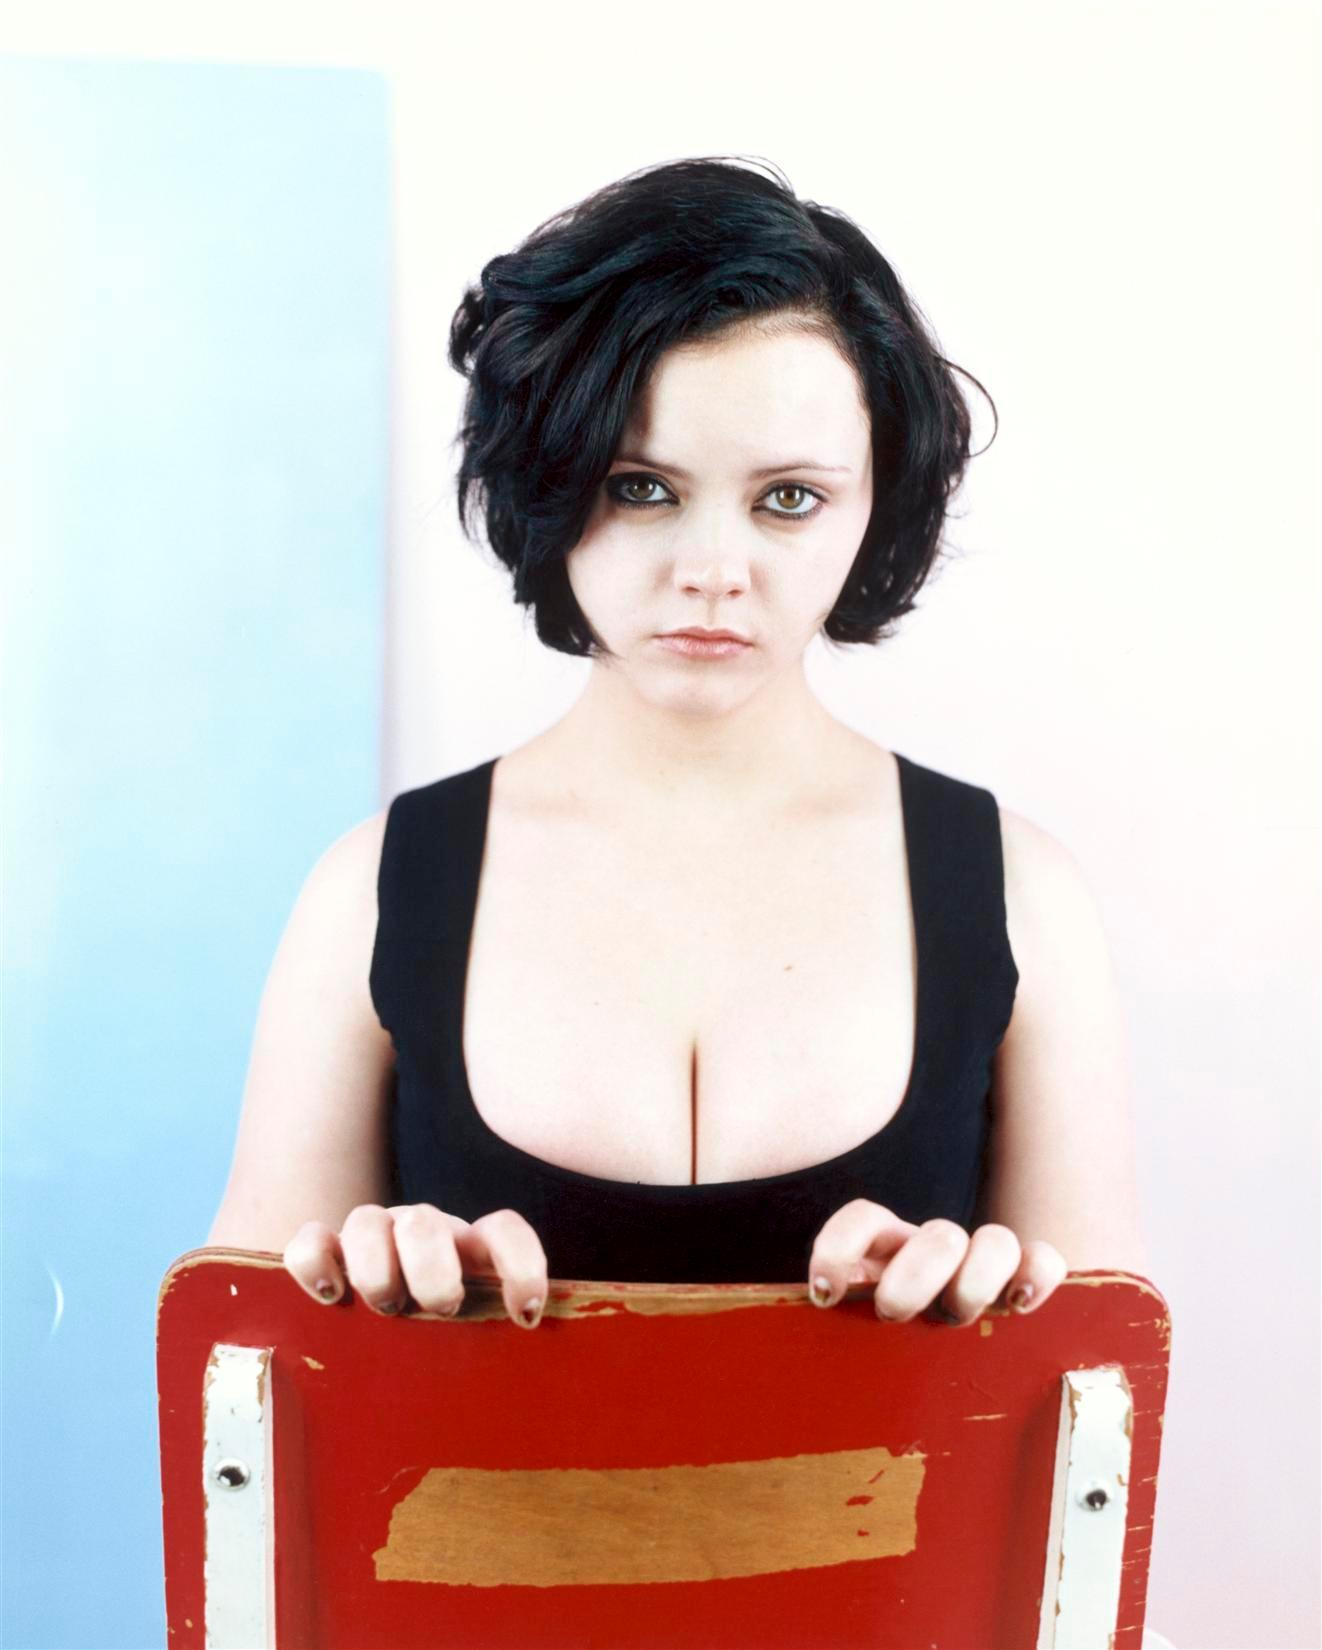 christina ricci tits in 1998 Remember When Christina Riccis Tits Were THIS BIG????